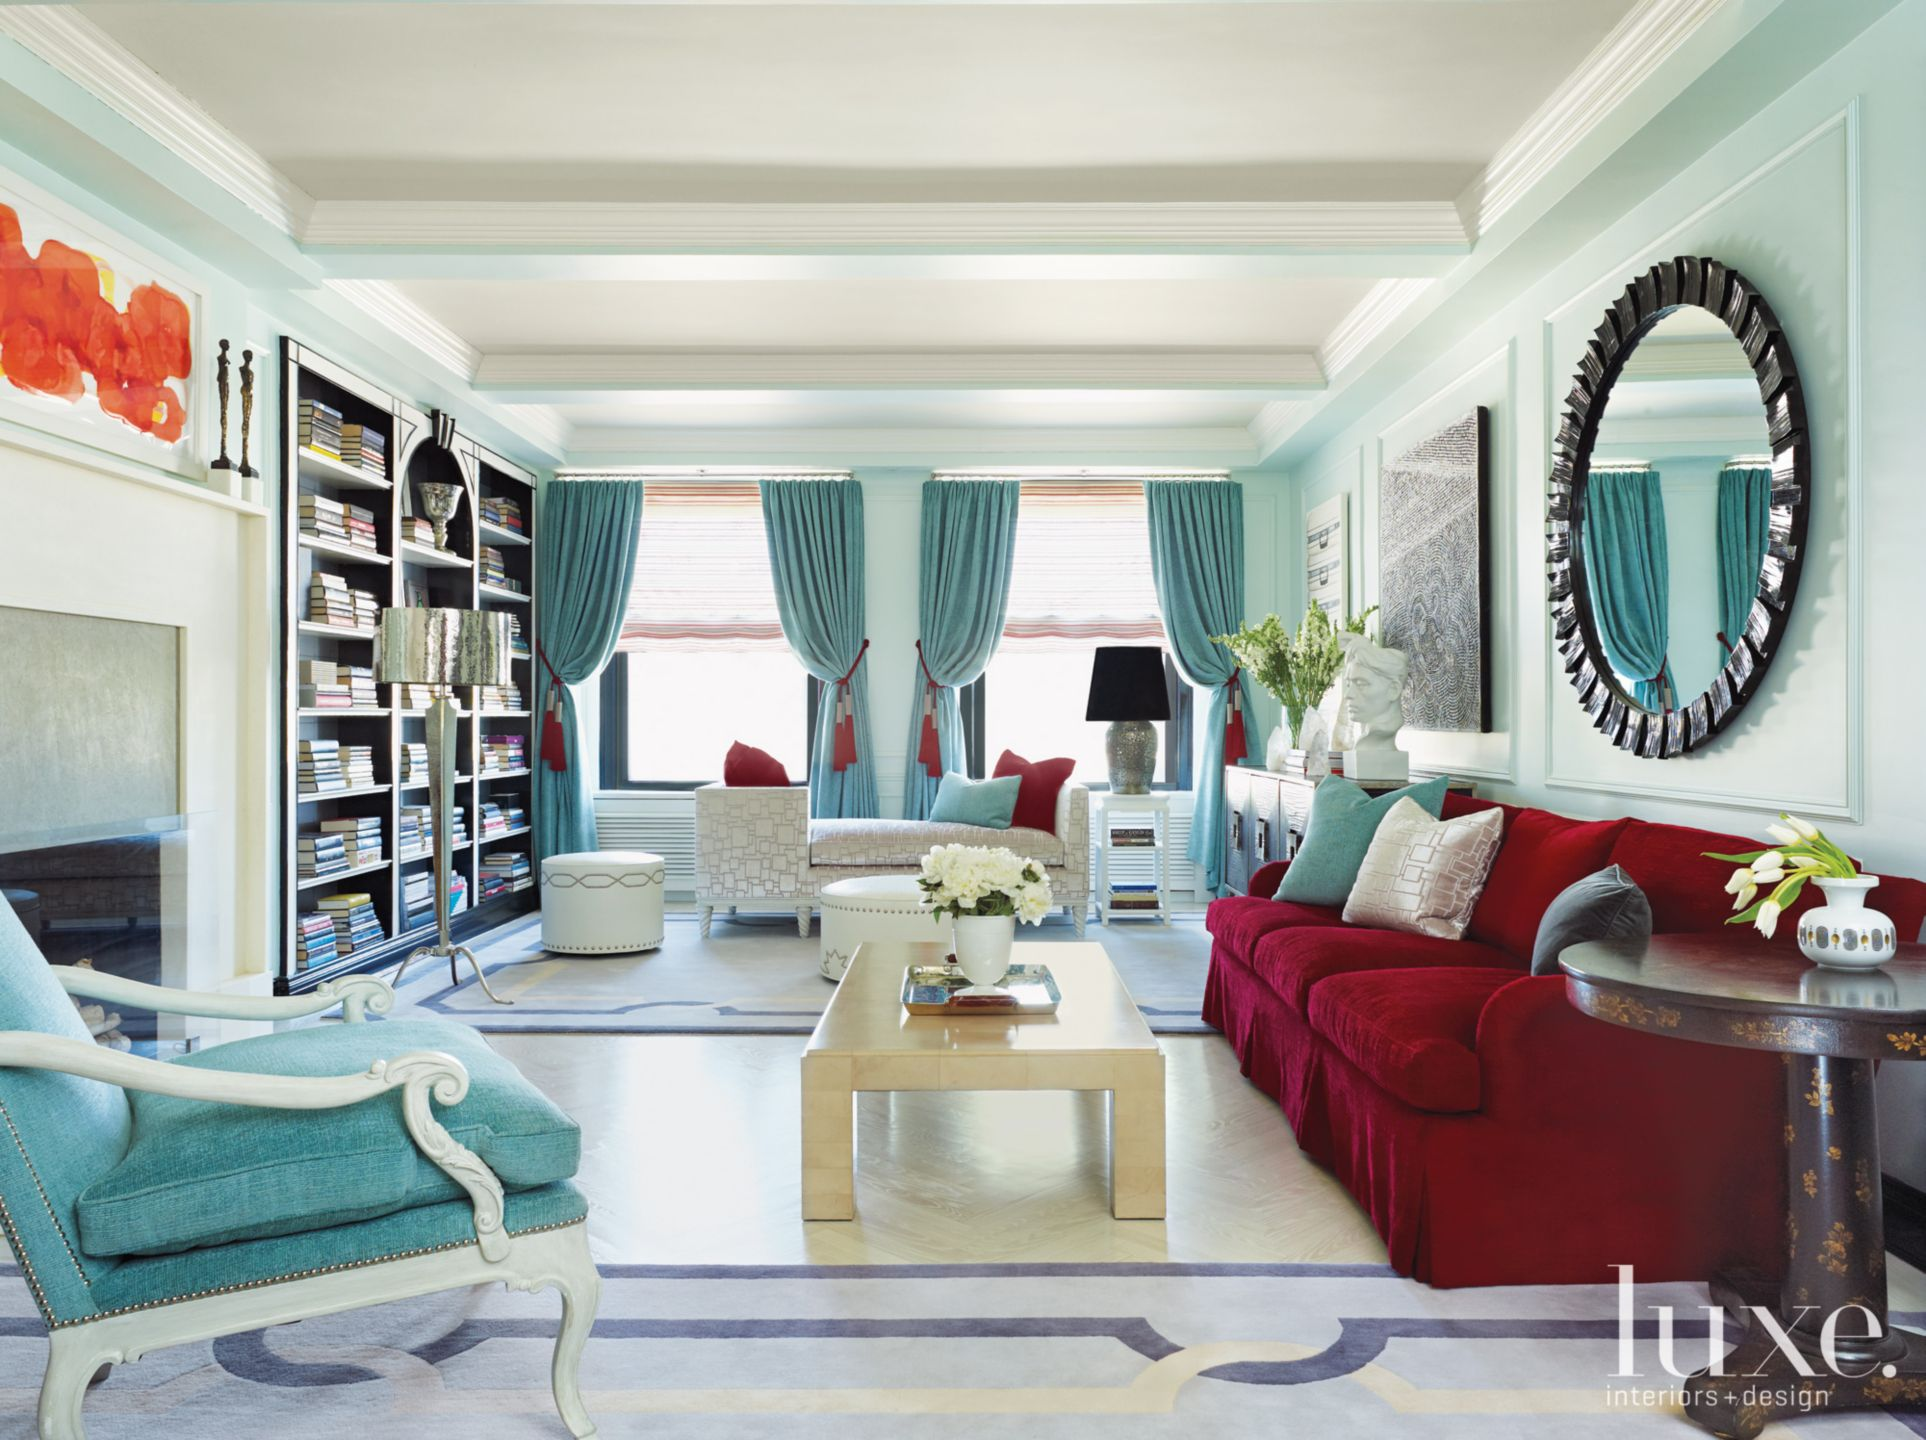 Turquoise Modern Living Room with Red Accents